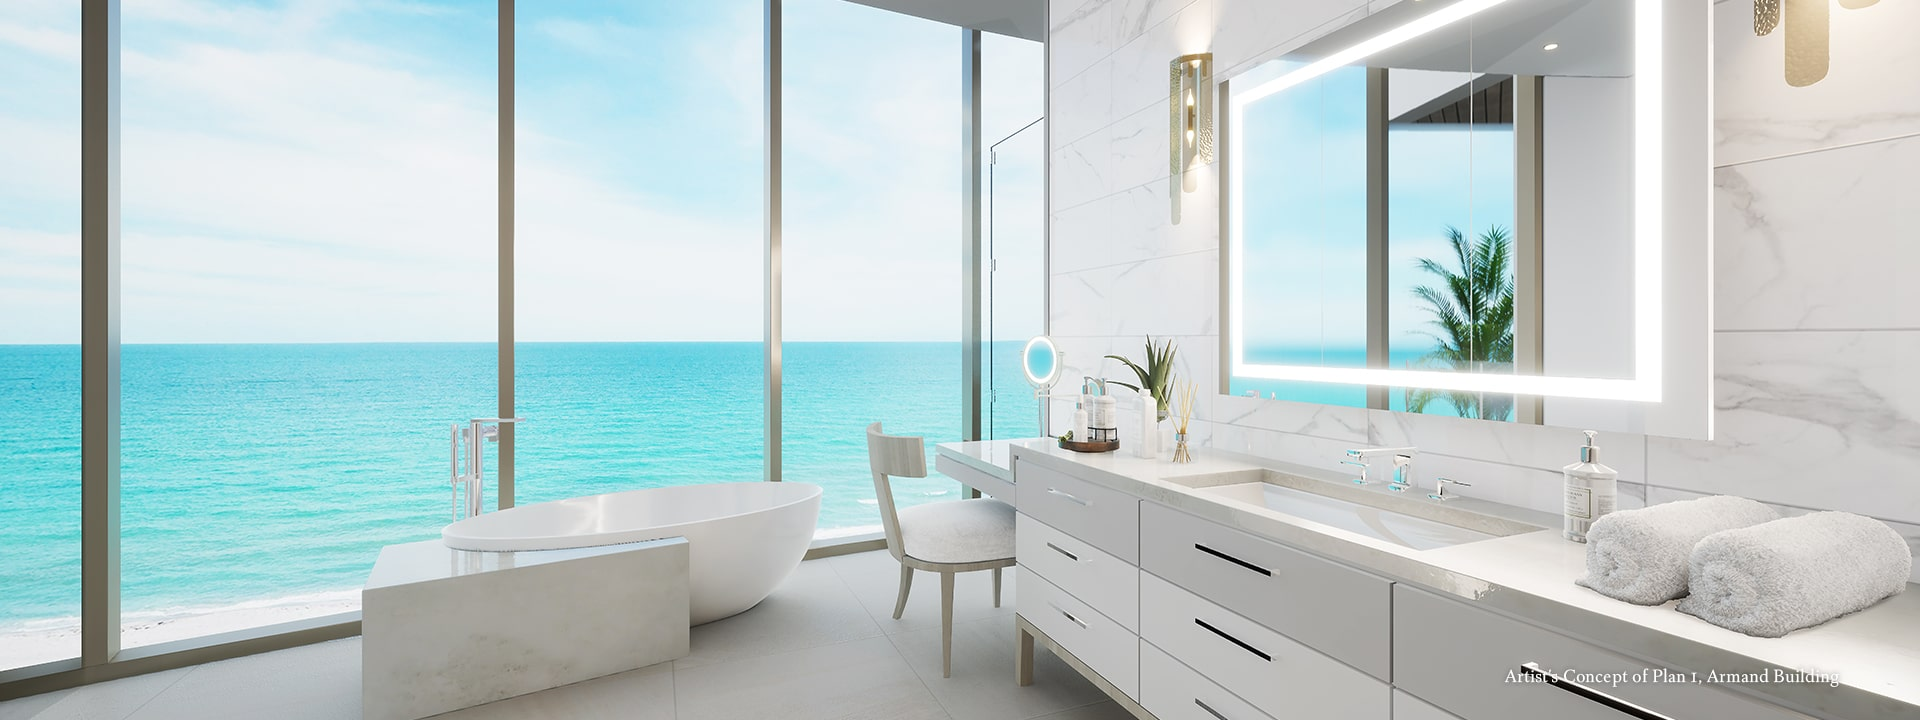 Armand Plan 1 Master Bath Rendering at The St Regis Longboat Key Resort